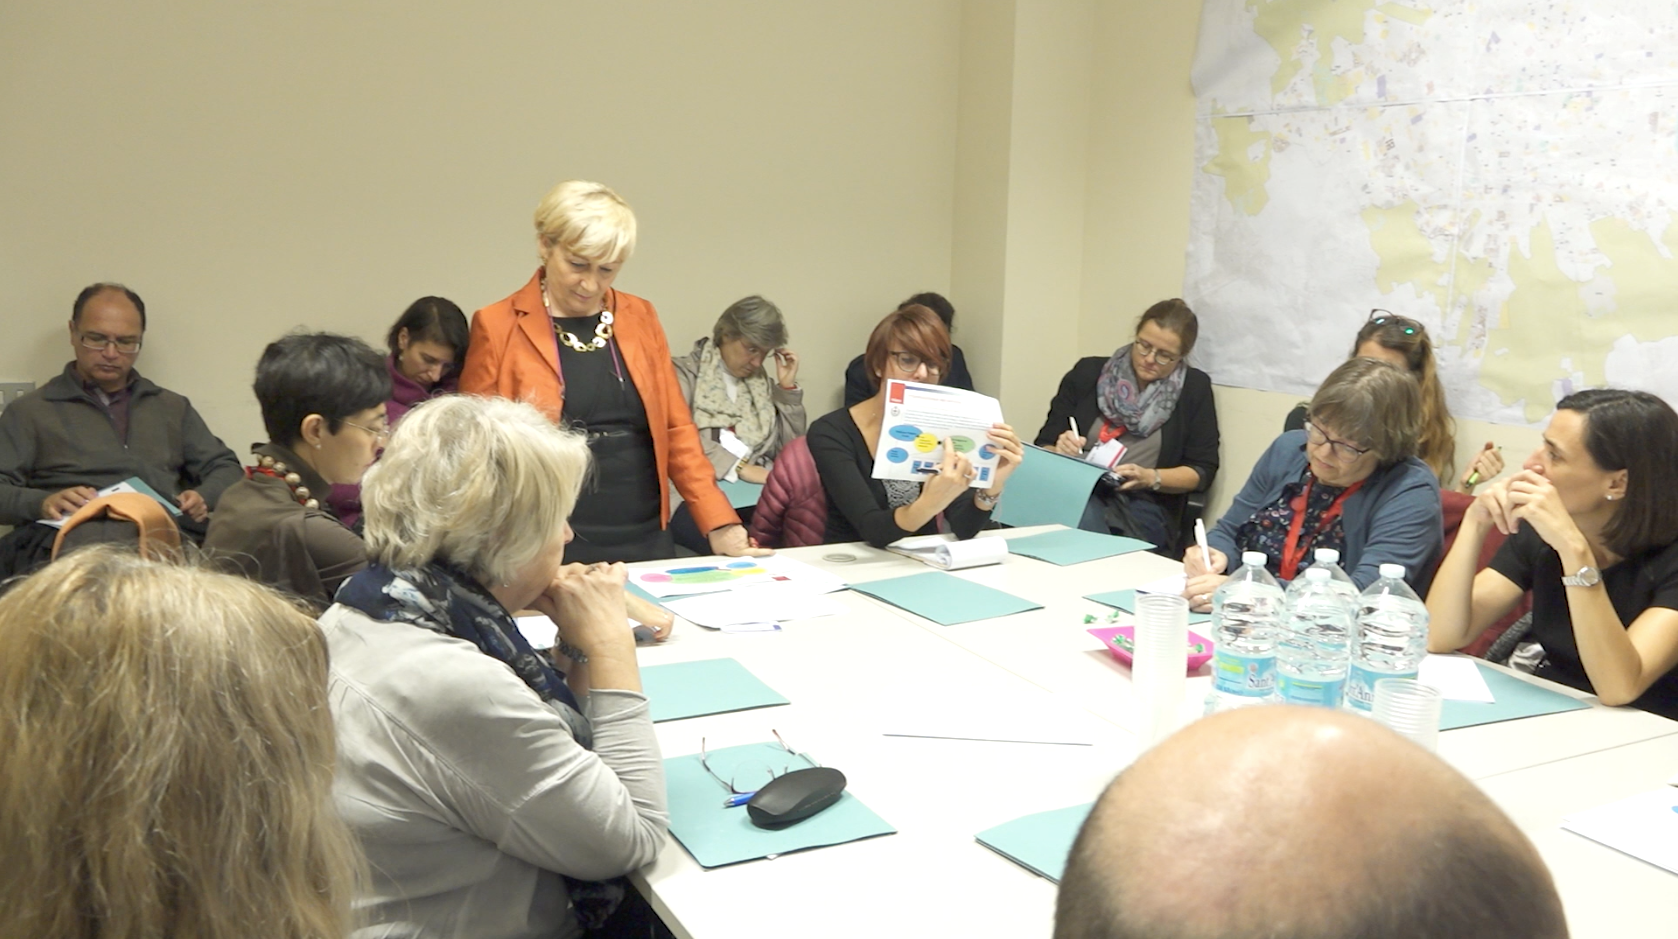 Video of the Solidarity Cities study visit in Milan 8-9 November 2018